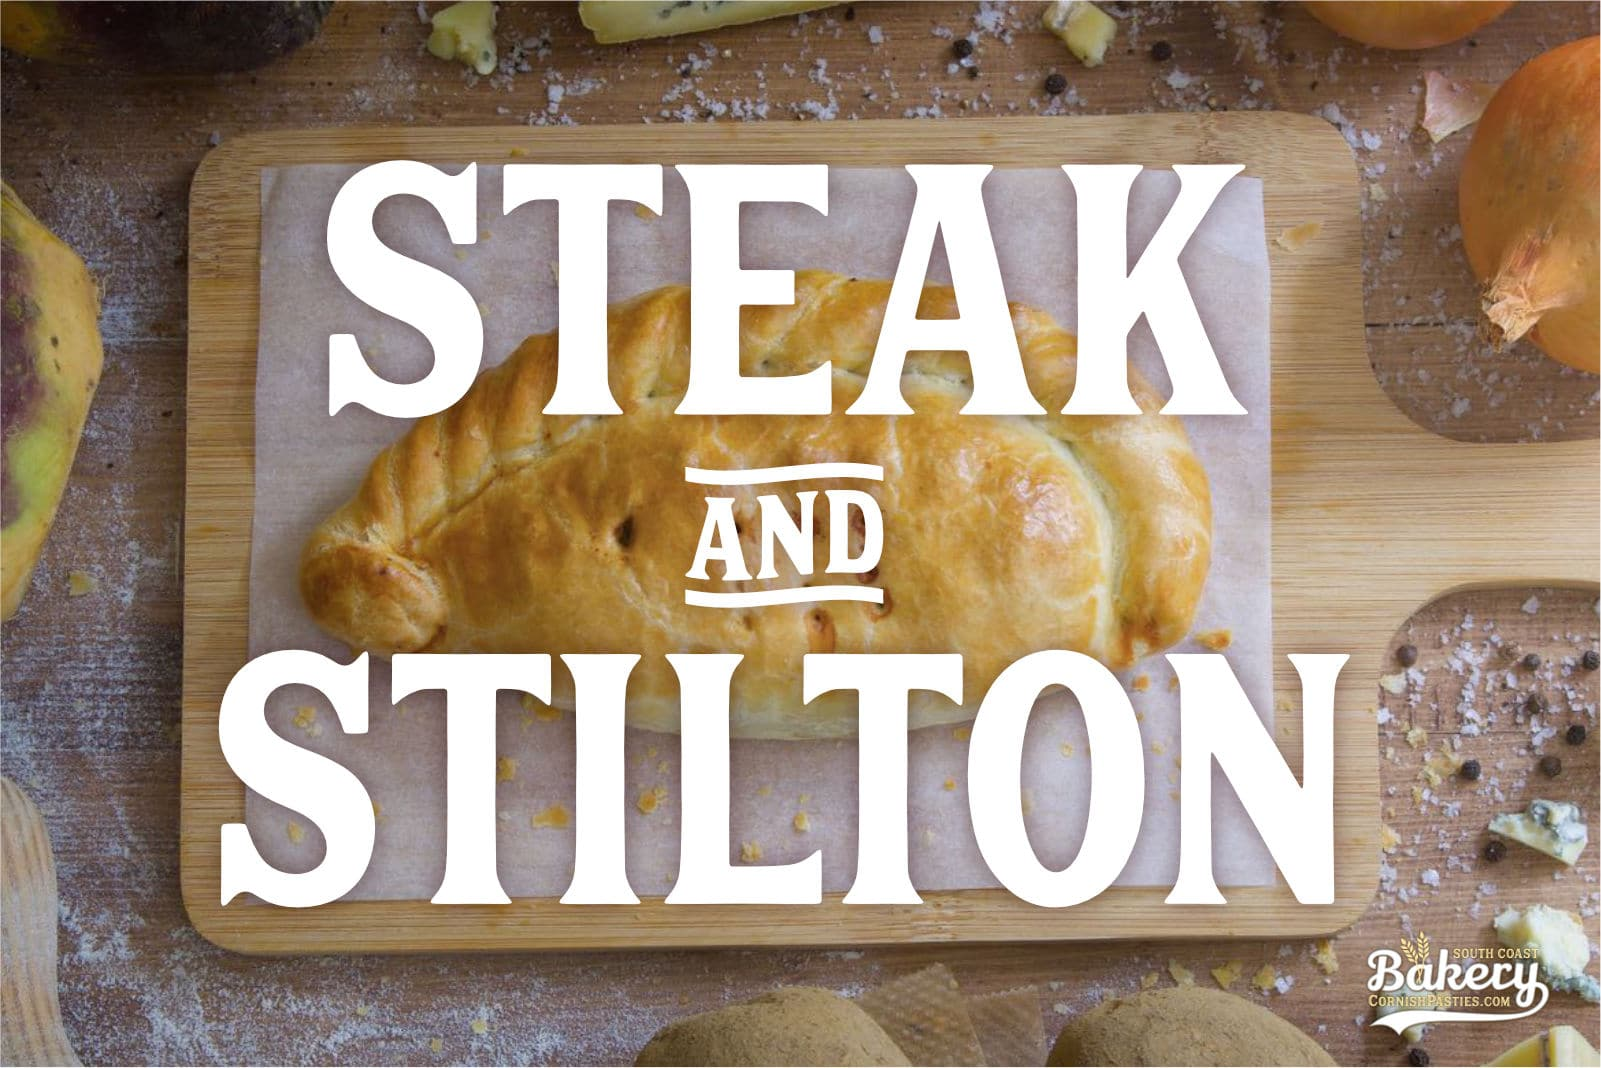 Steak and Stilton Pasty